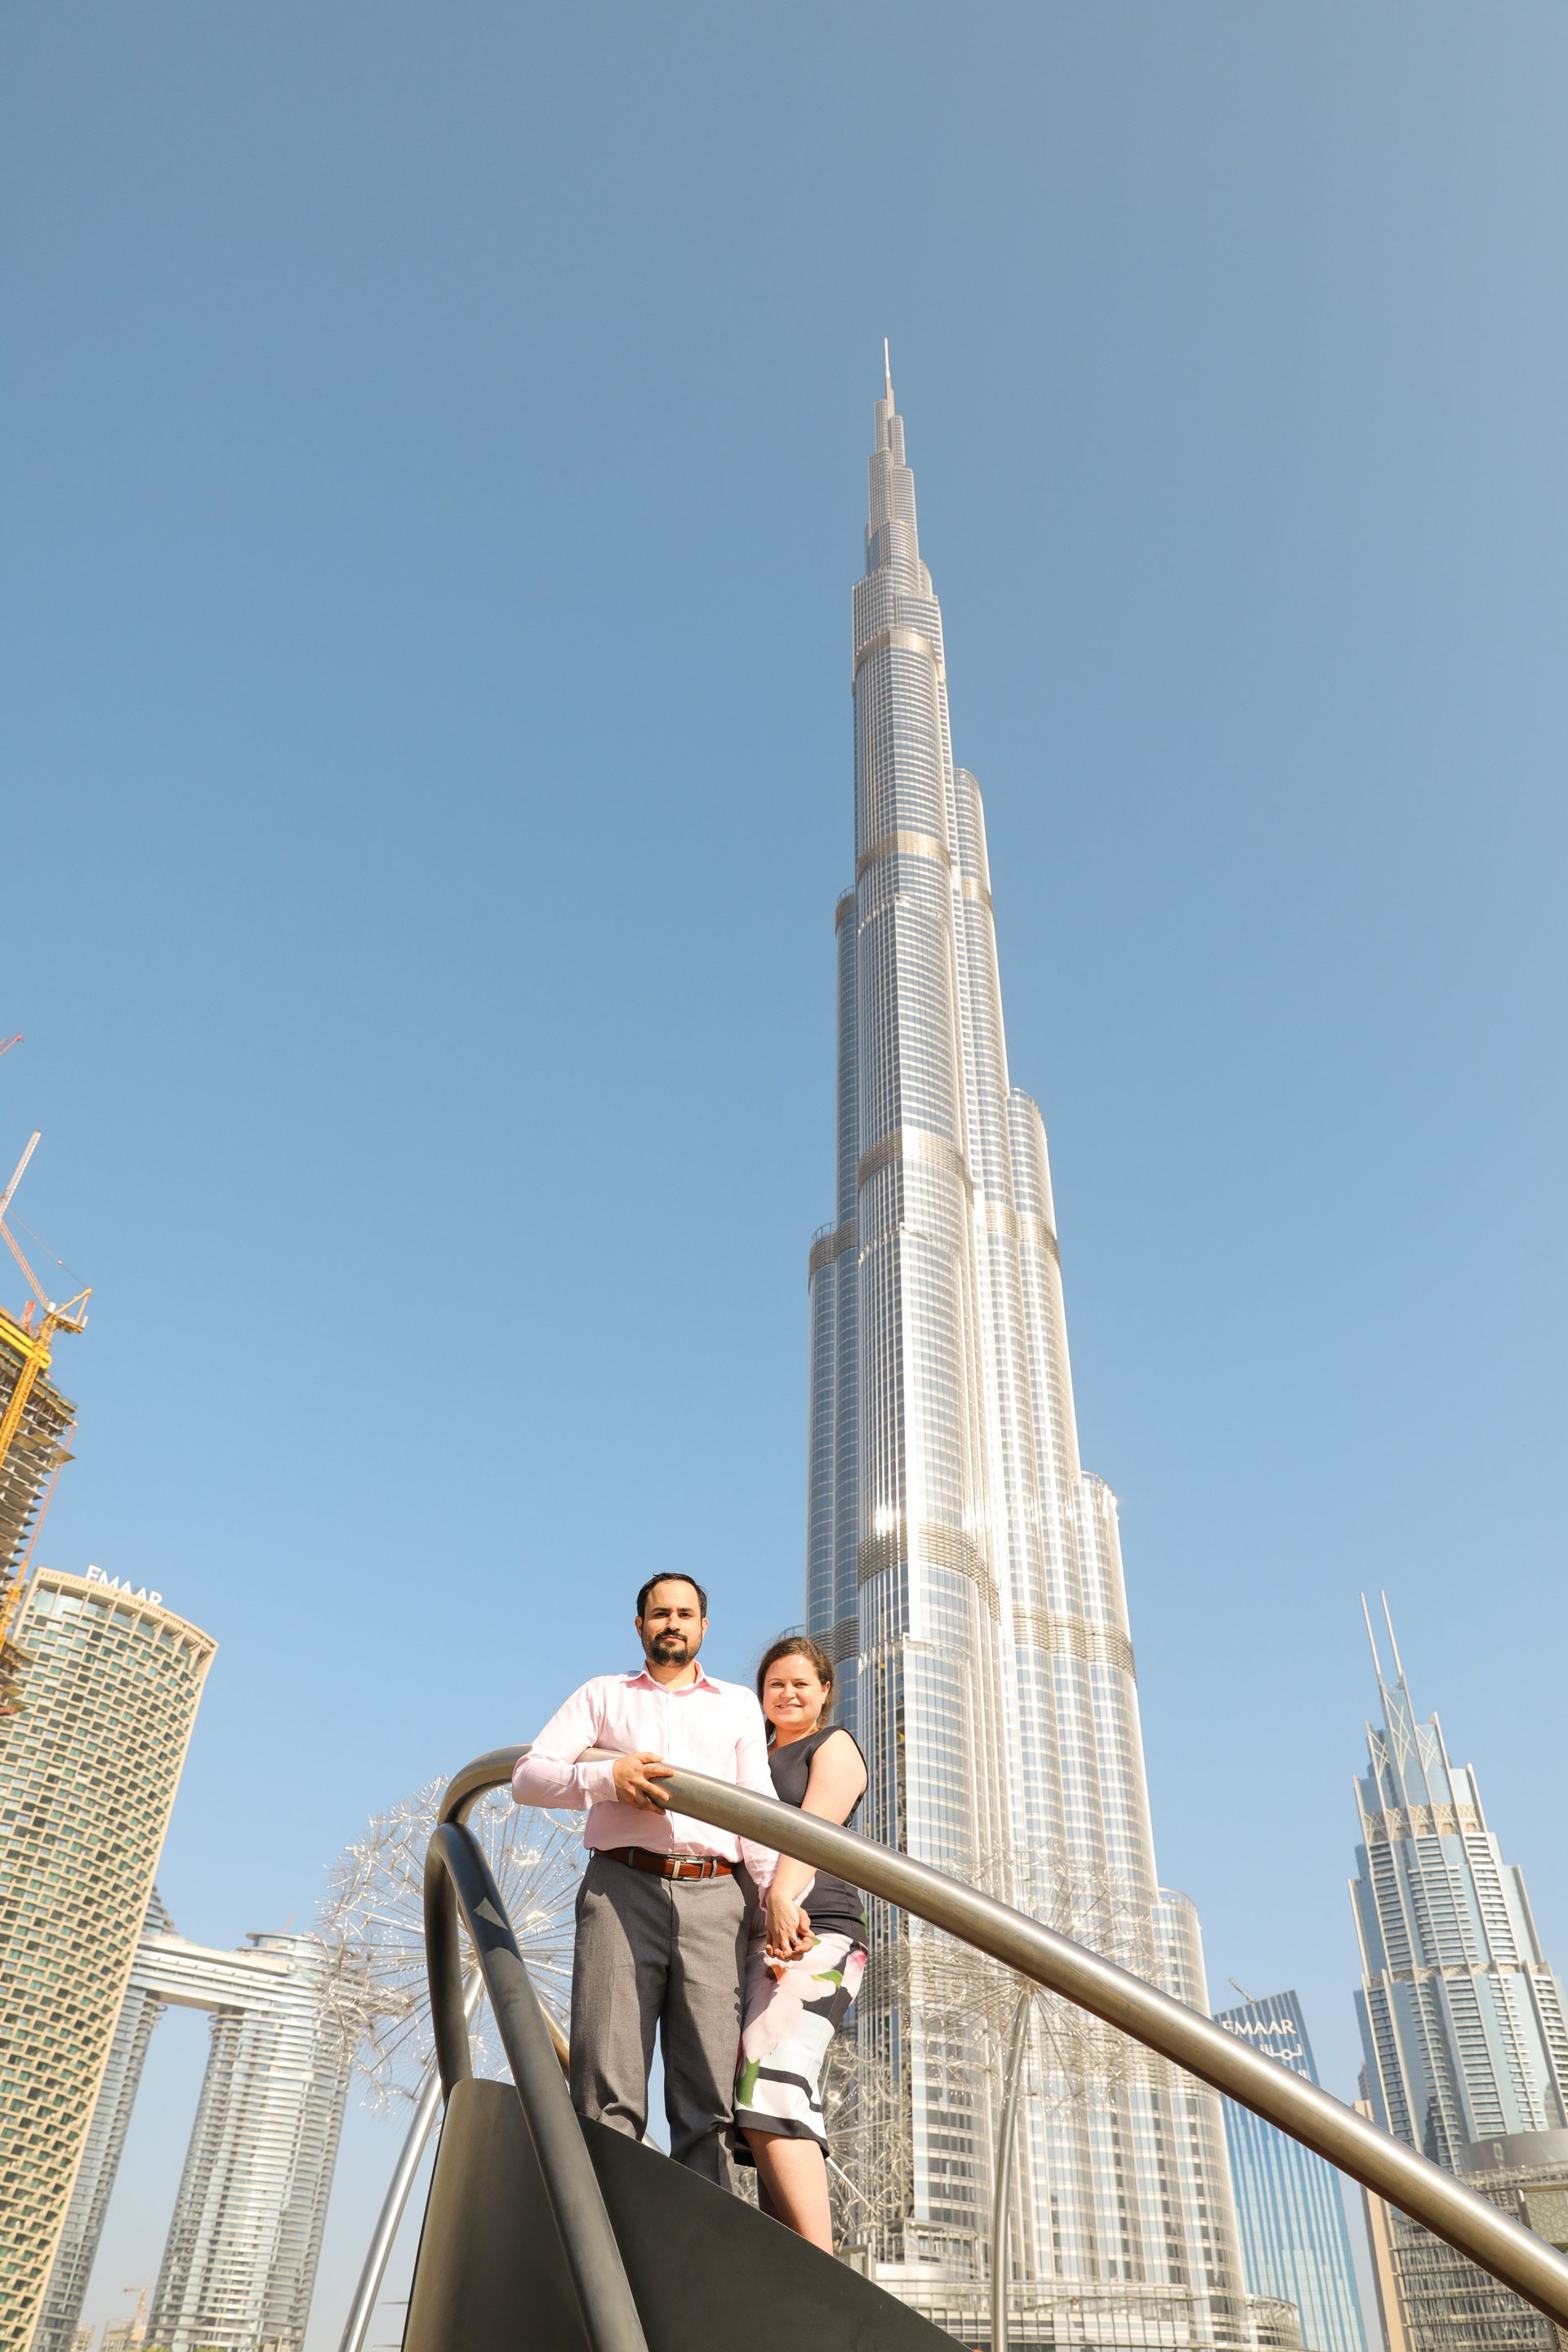 Flytographer Travel Story - A Weekend in Dubai